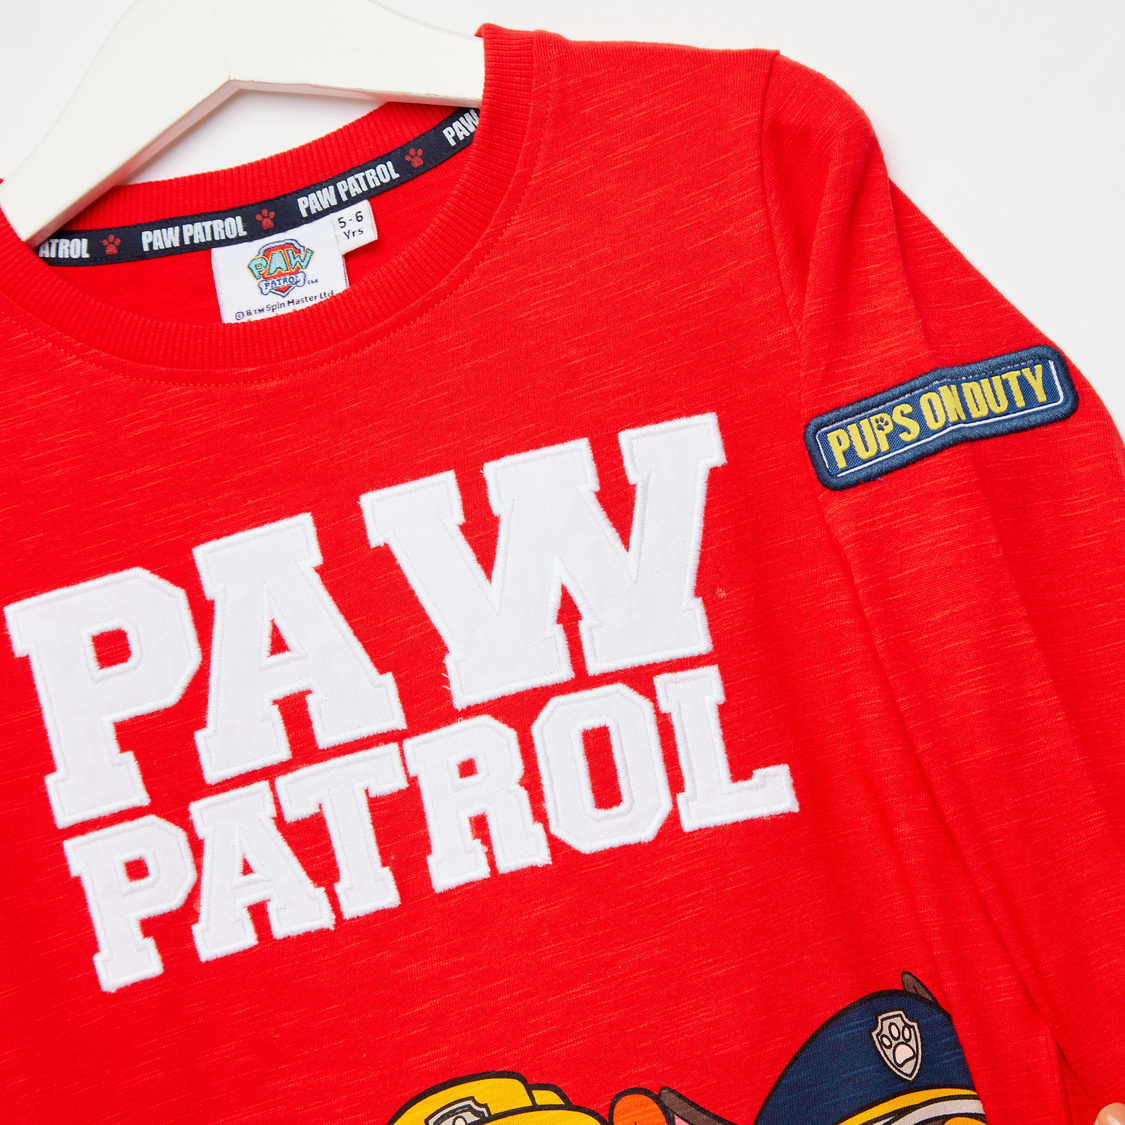 PAW Patrol Print T-shirt with Round Neck and Long Sleeves